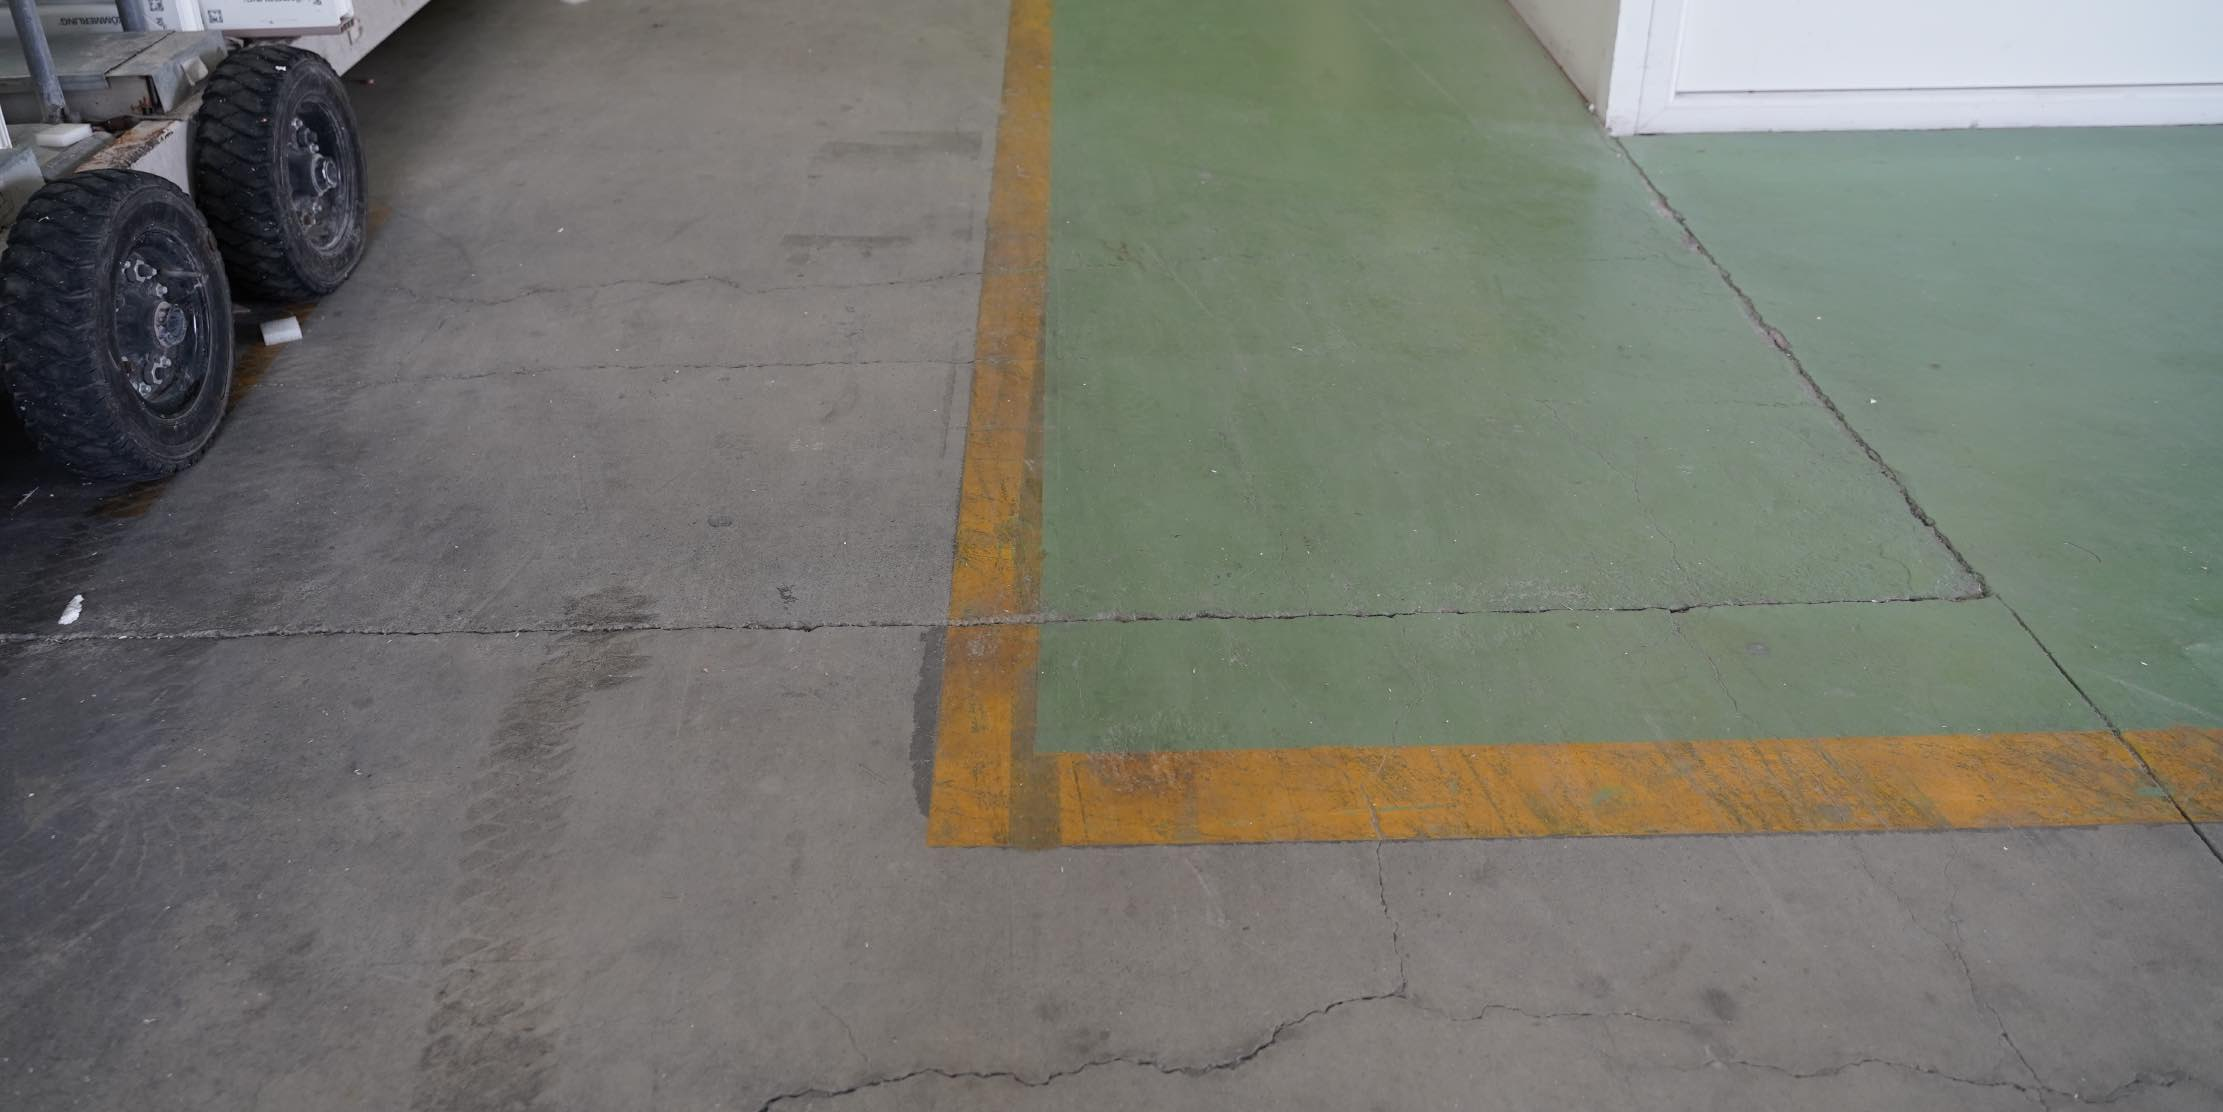 Marking of industrial floors